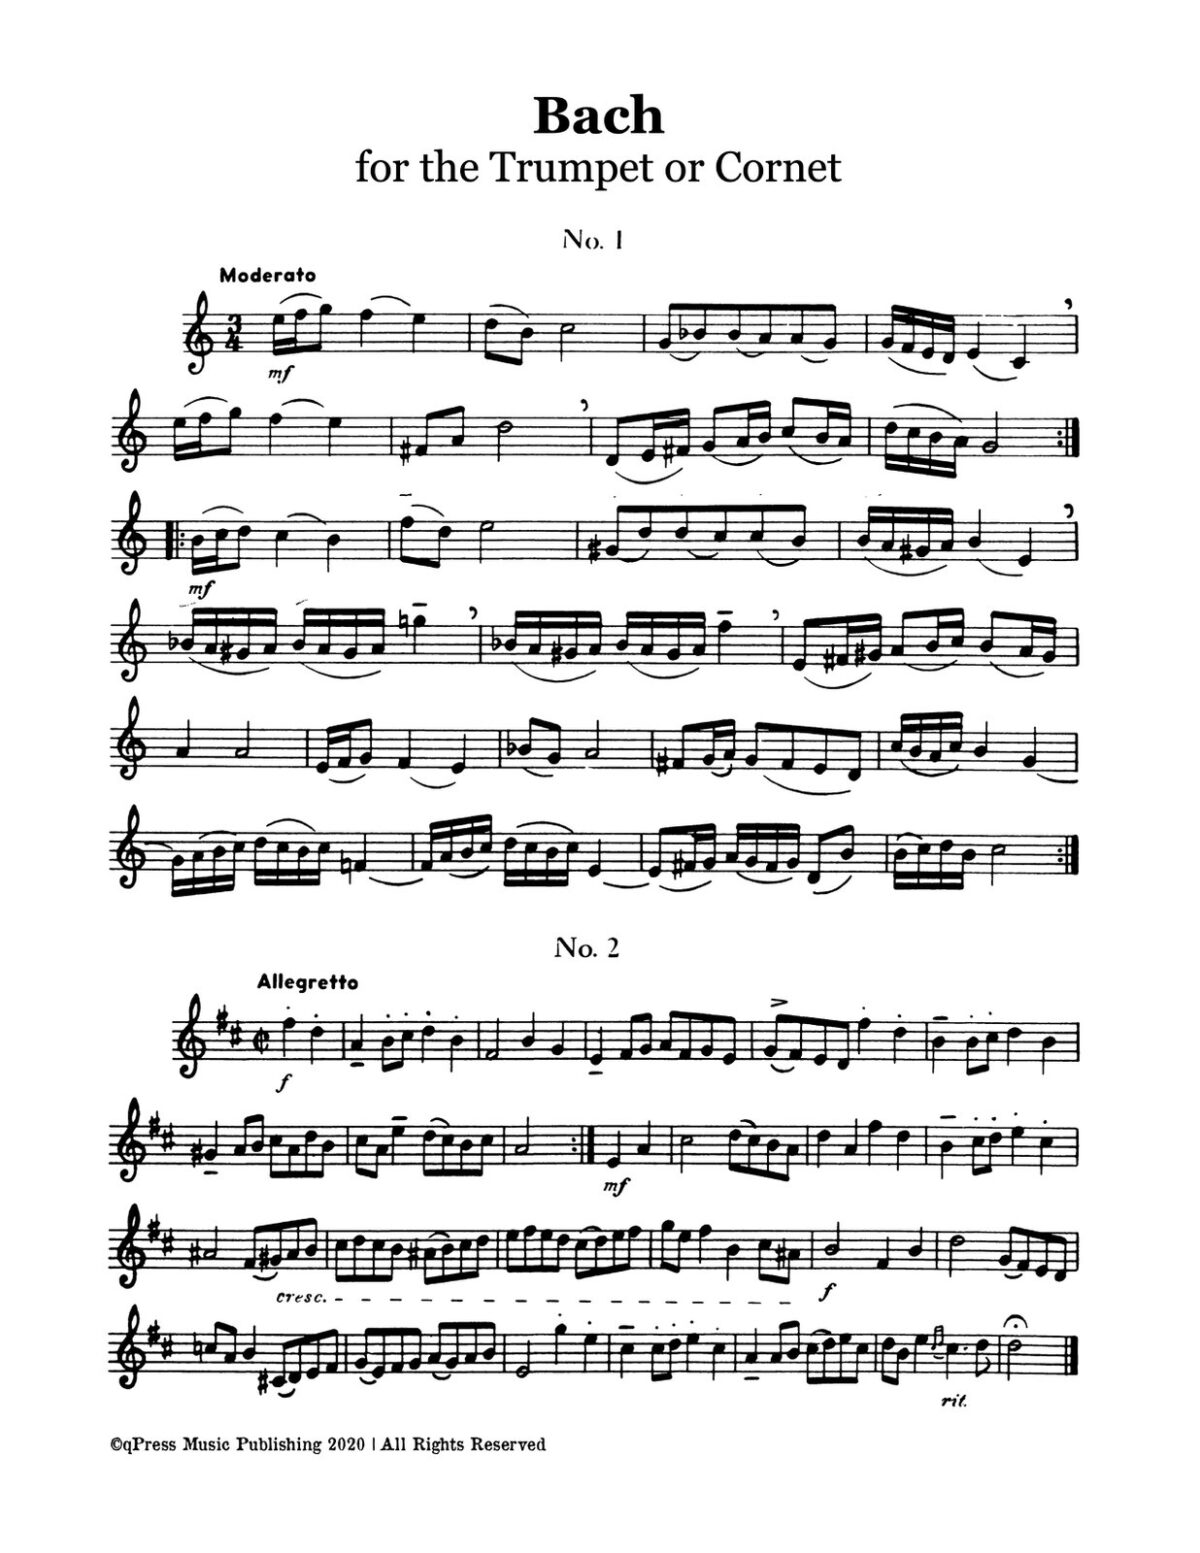 Bach-Gisondi, Bach for the Trumpet or Cornet-p05